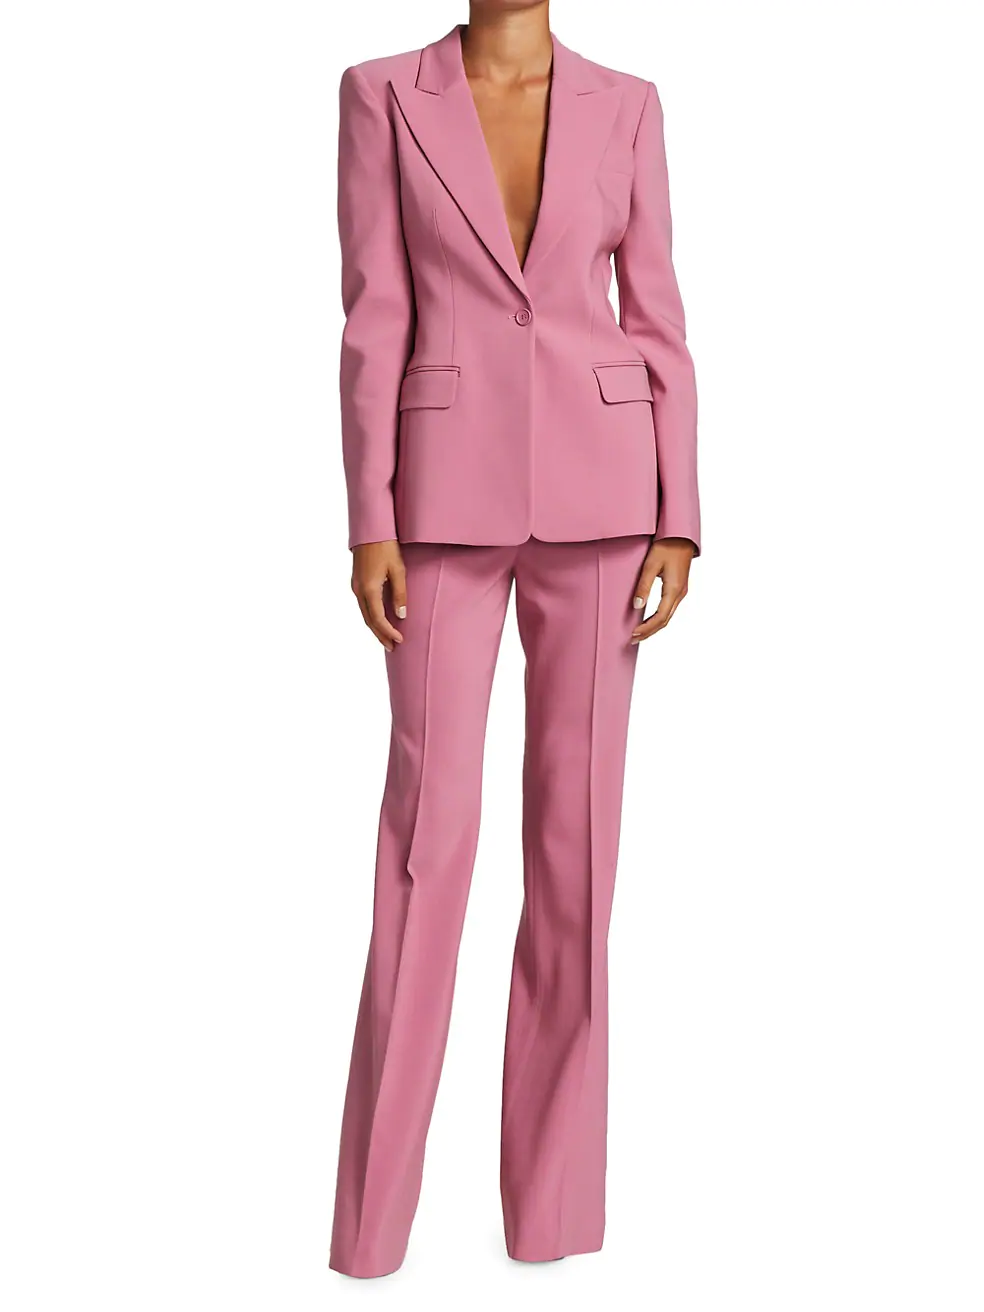 Michael Kors Collection Jacket + High-Rise Pants